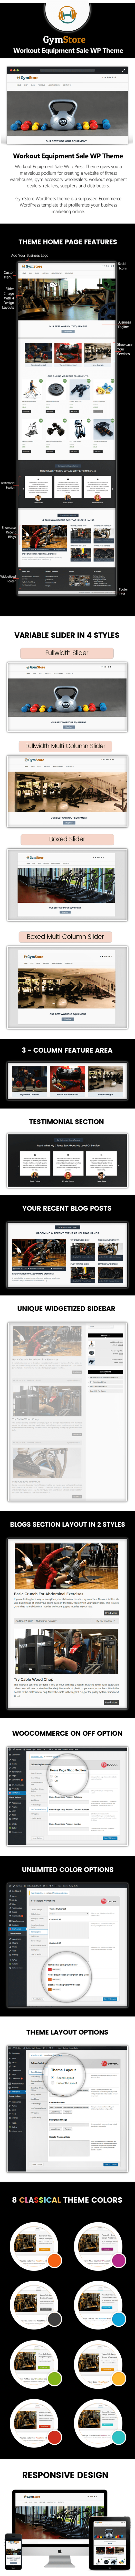 Workout Equipment Sale WP Theme